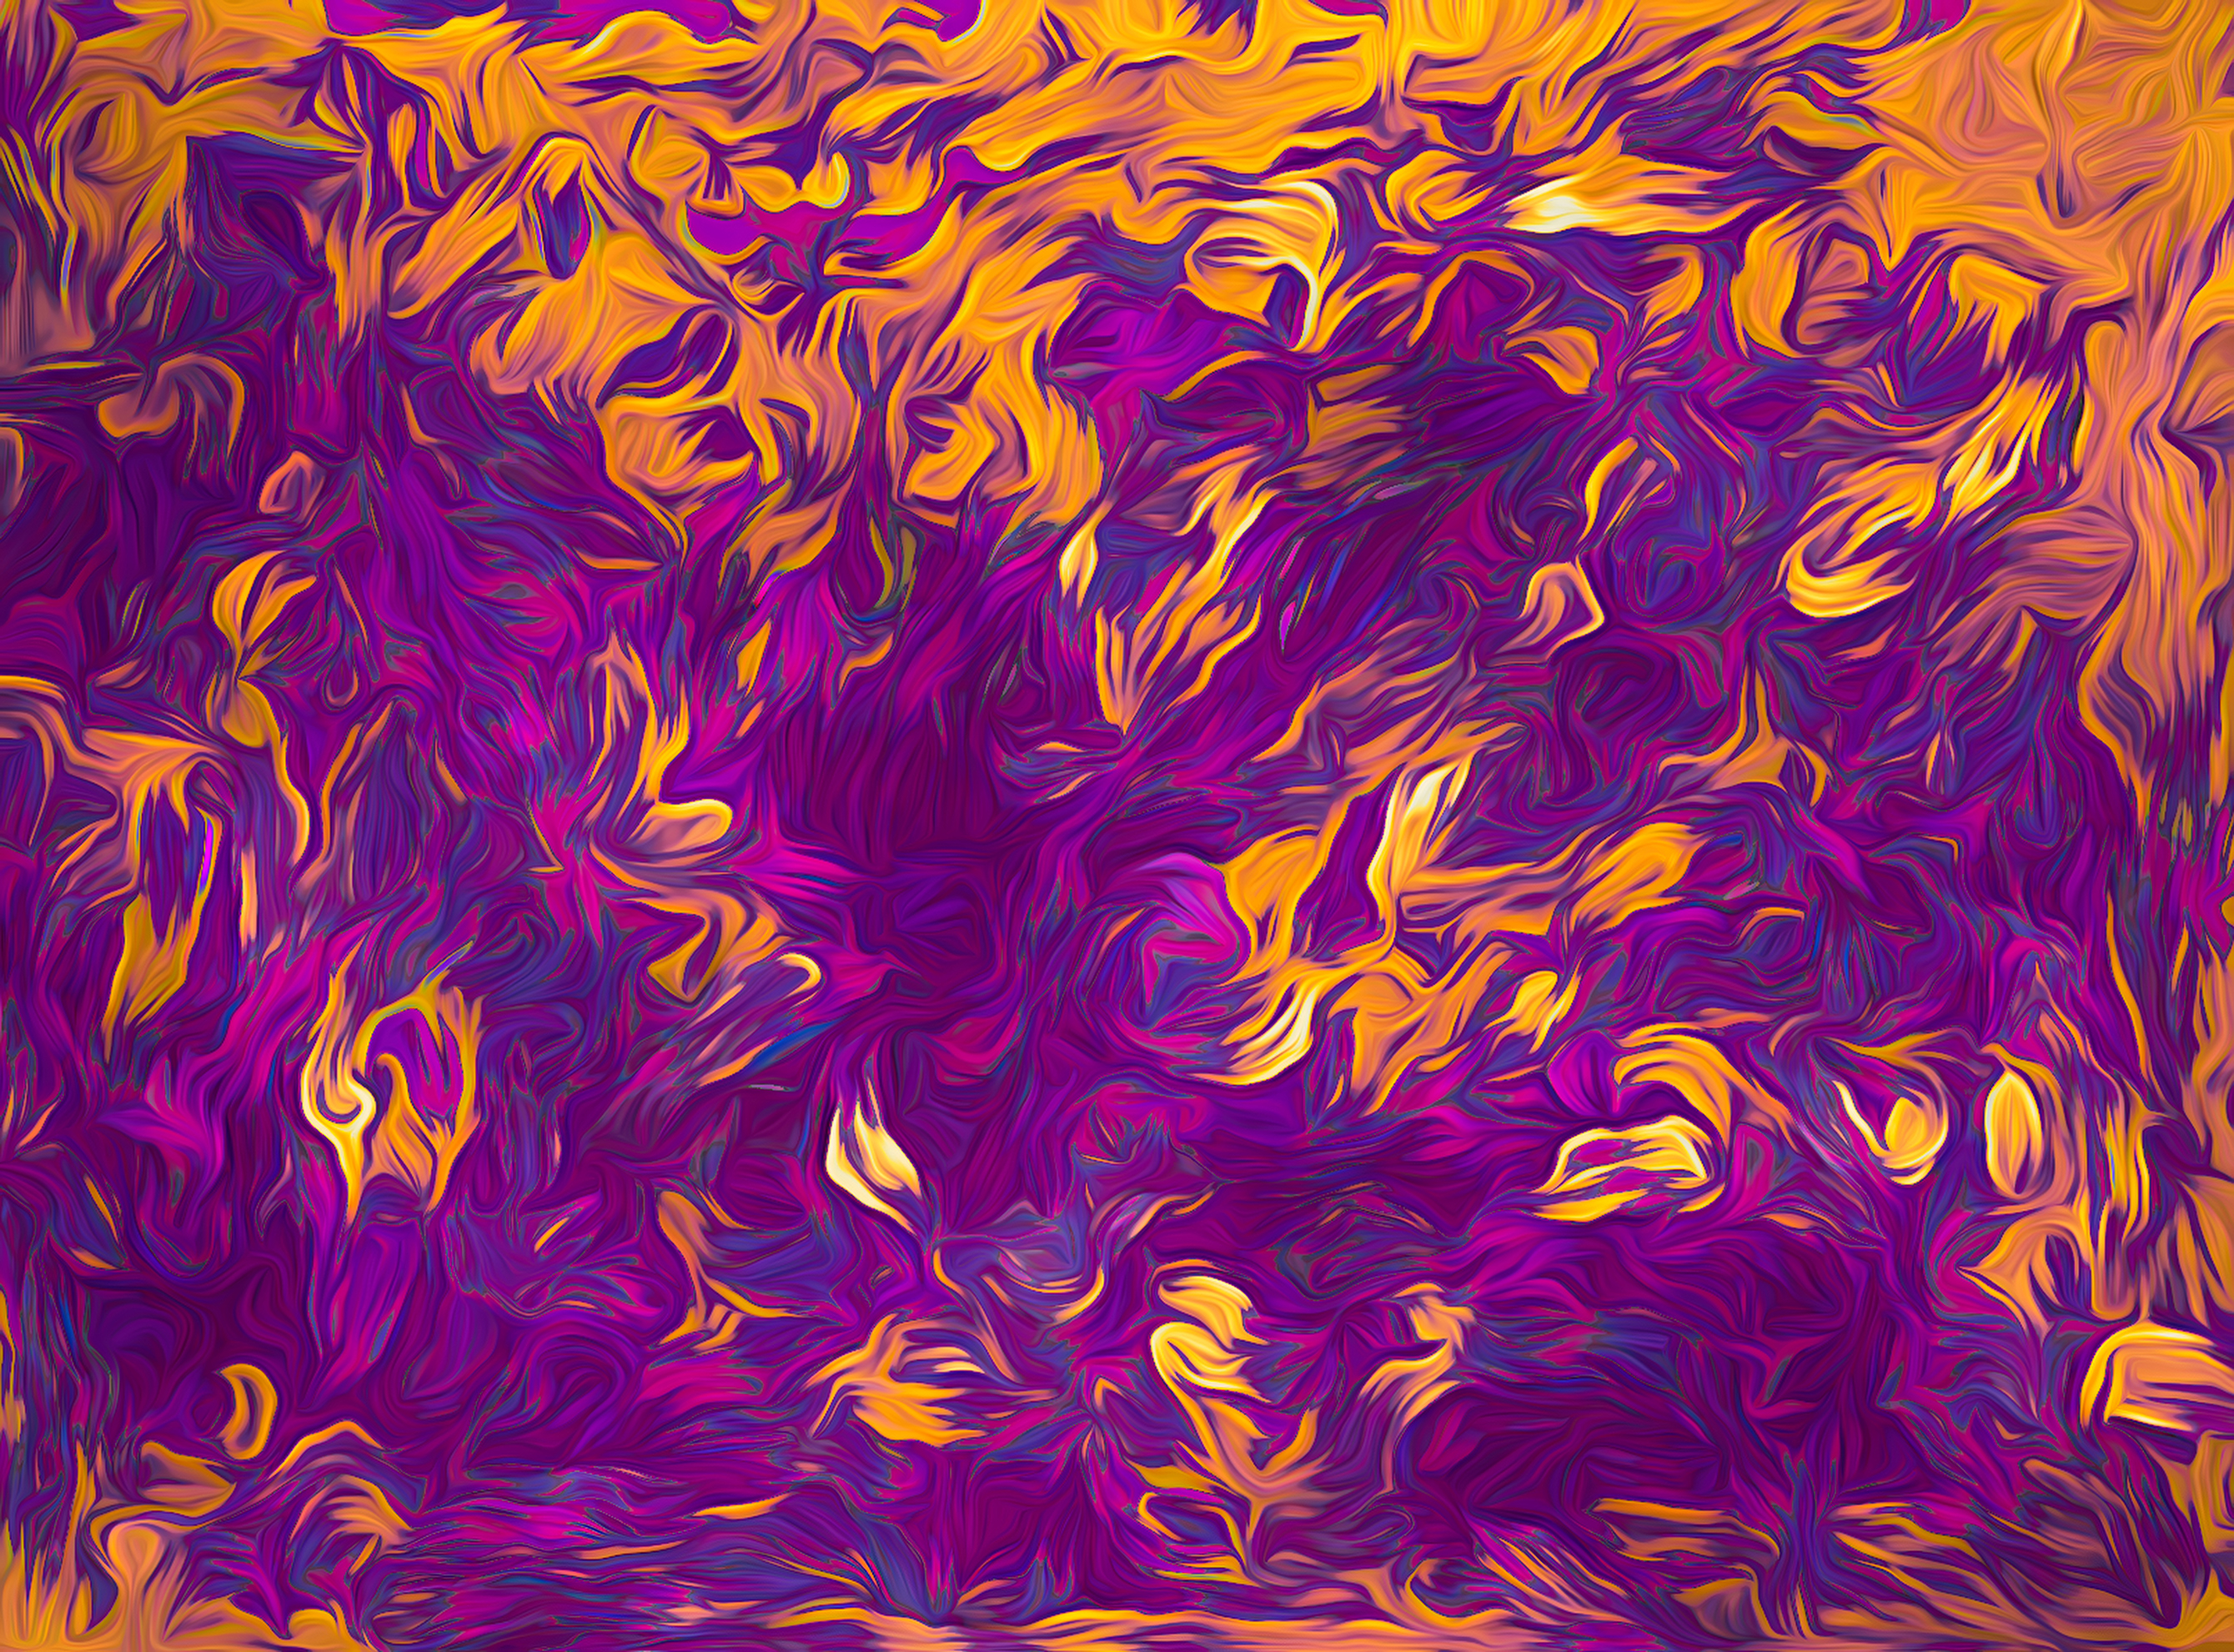 an abstract spill painting of purples pouring into amber meant to document wheatfields at twilight